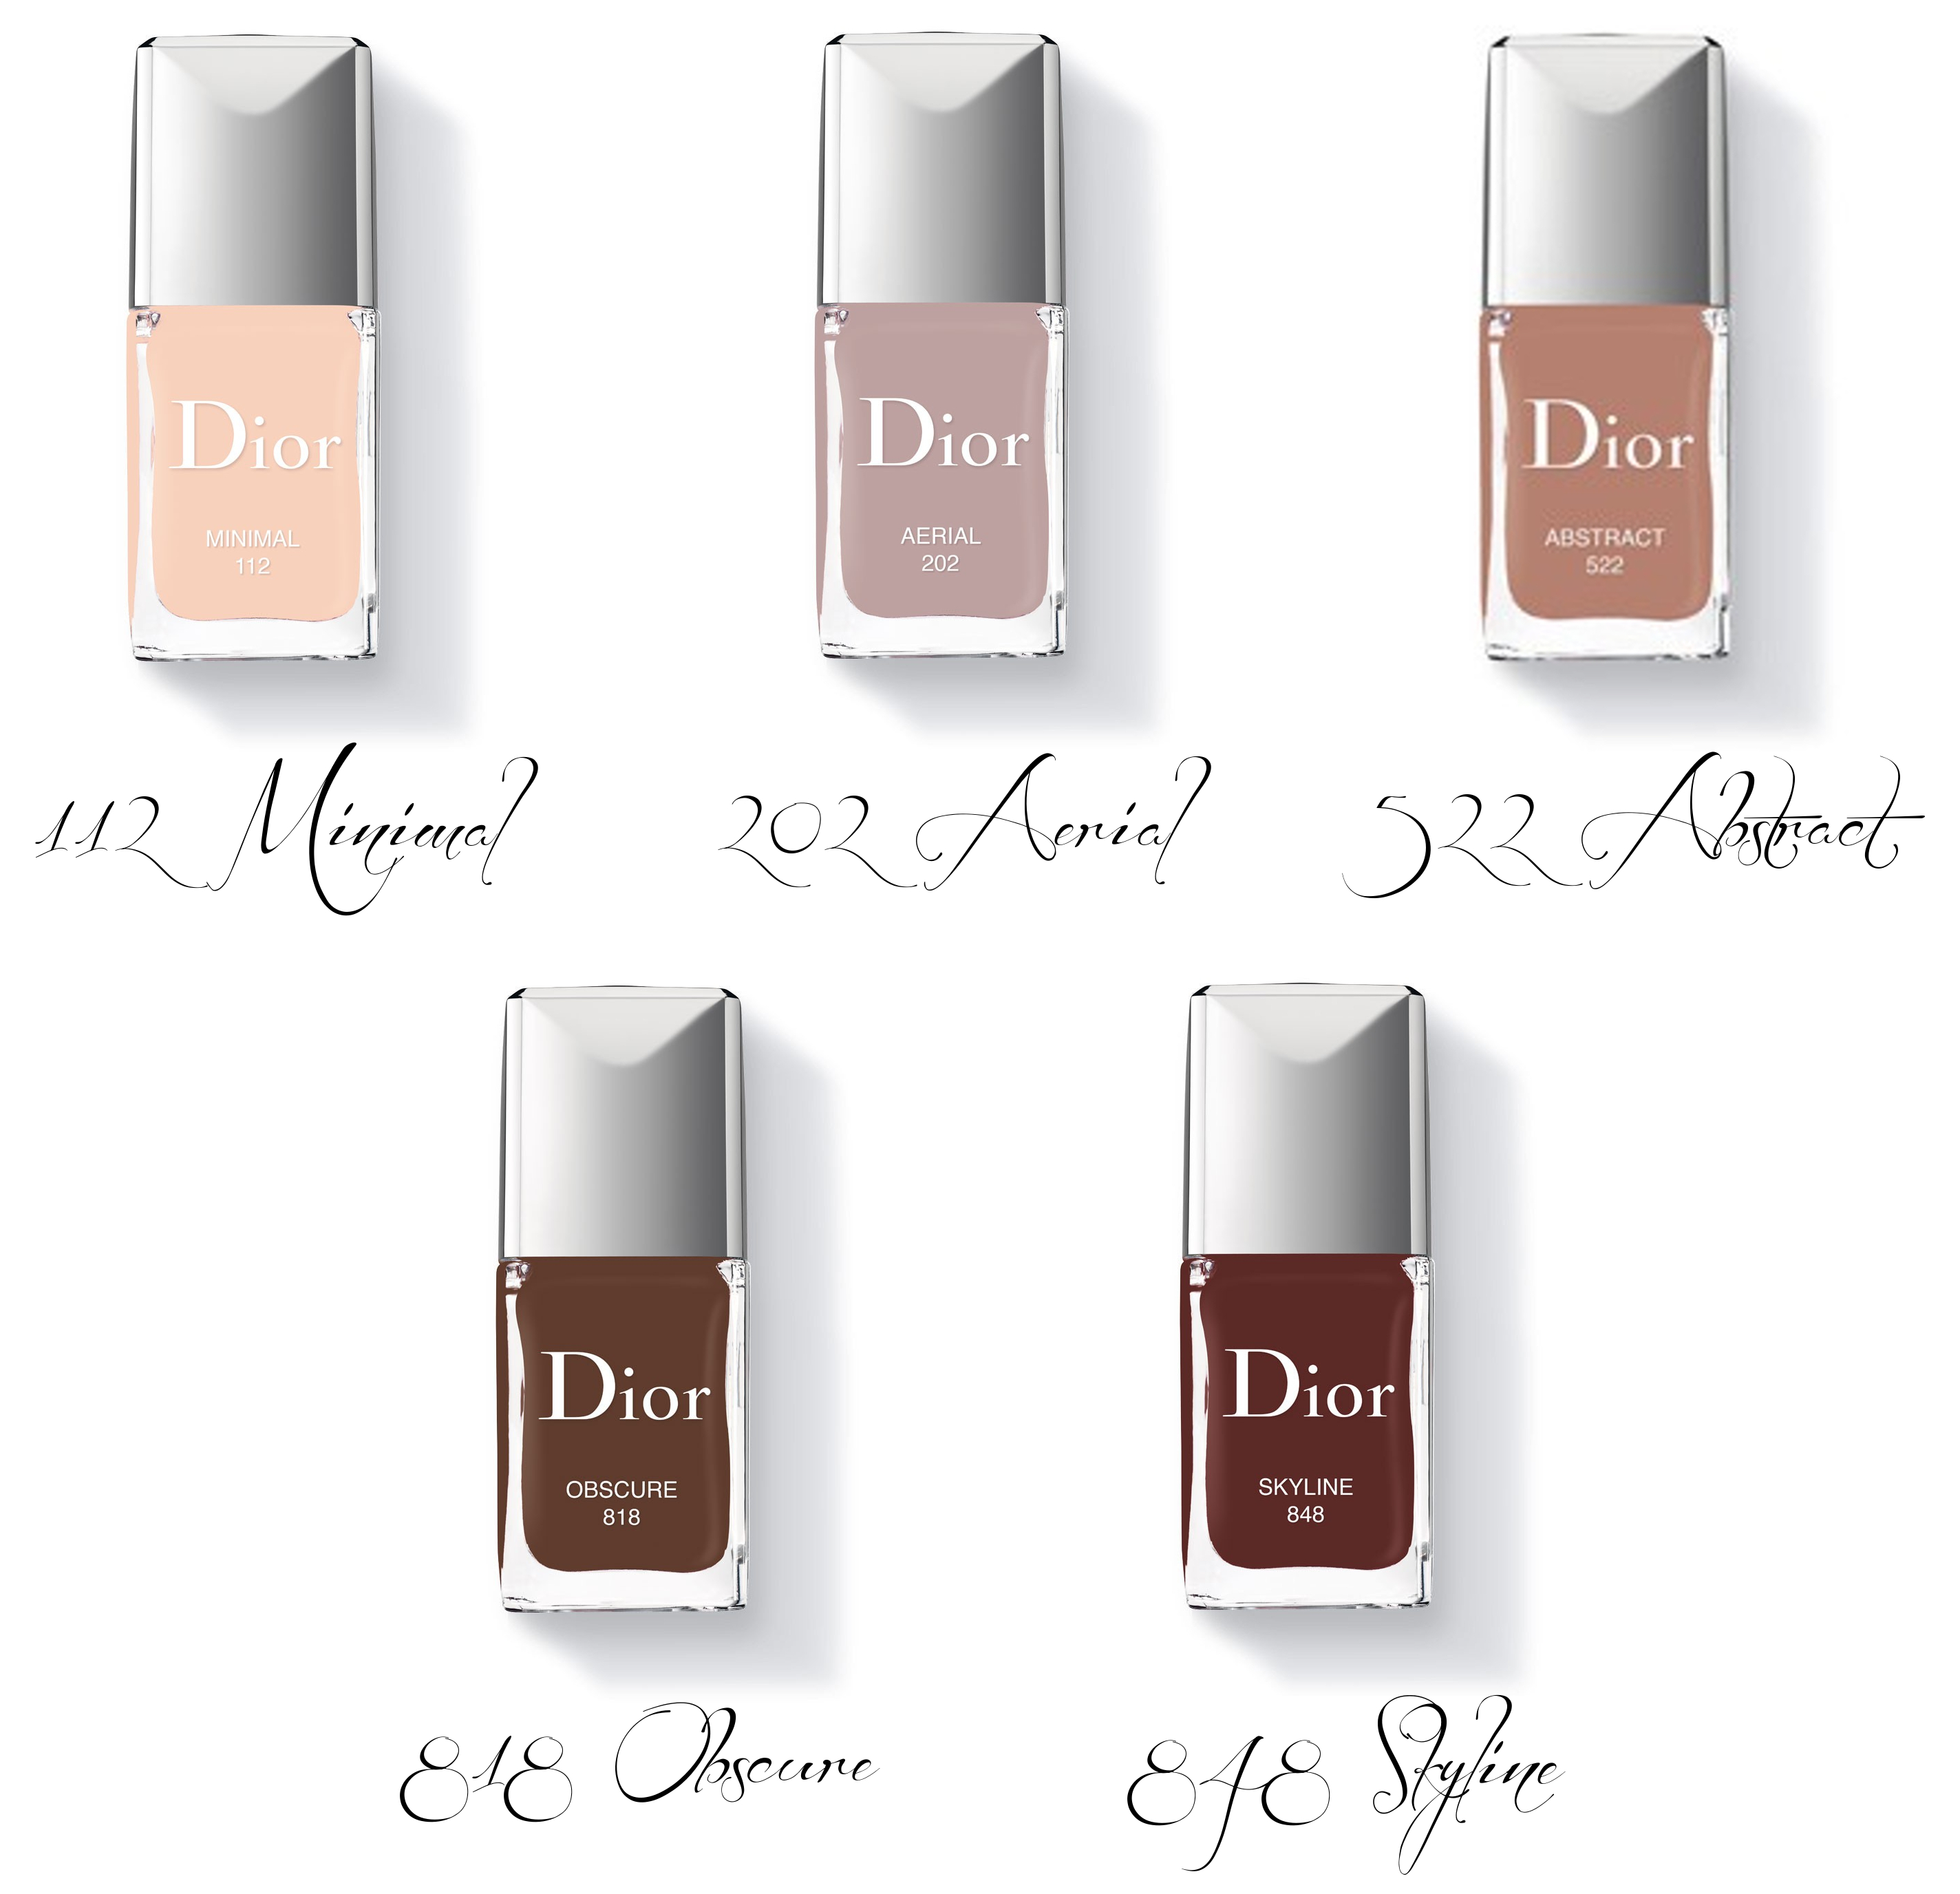 Dior kolekcja Autumn/Fall 2016 Skyline Vernis 112 Minimal, 202 Aerial, 522 Abstract, 818 Obscure, 848 Skyline